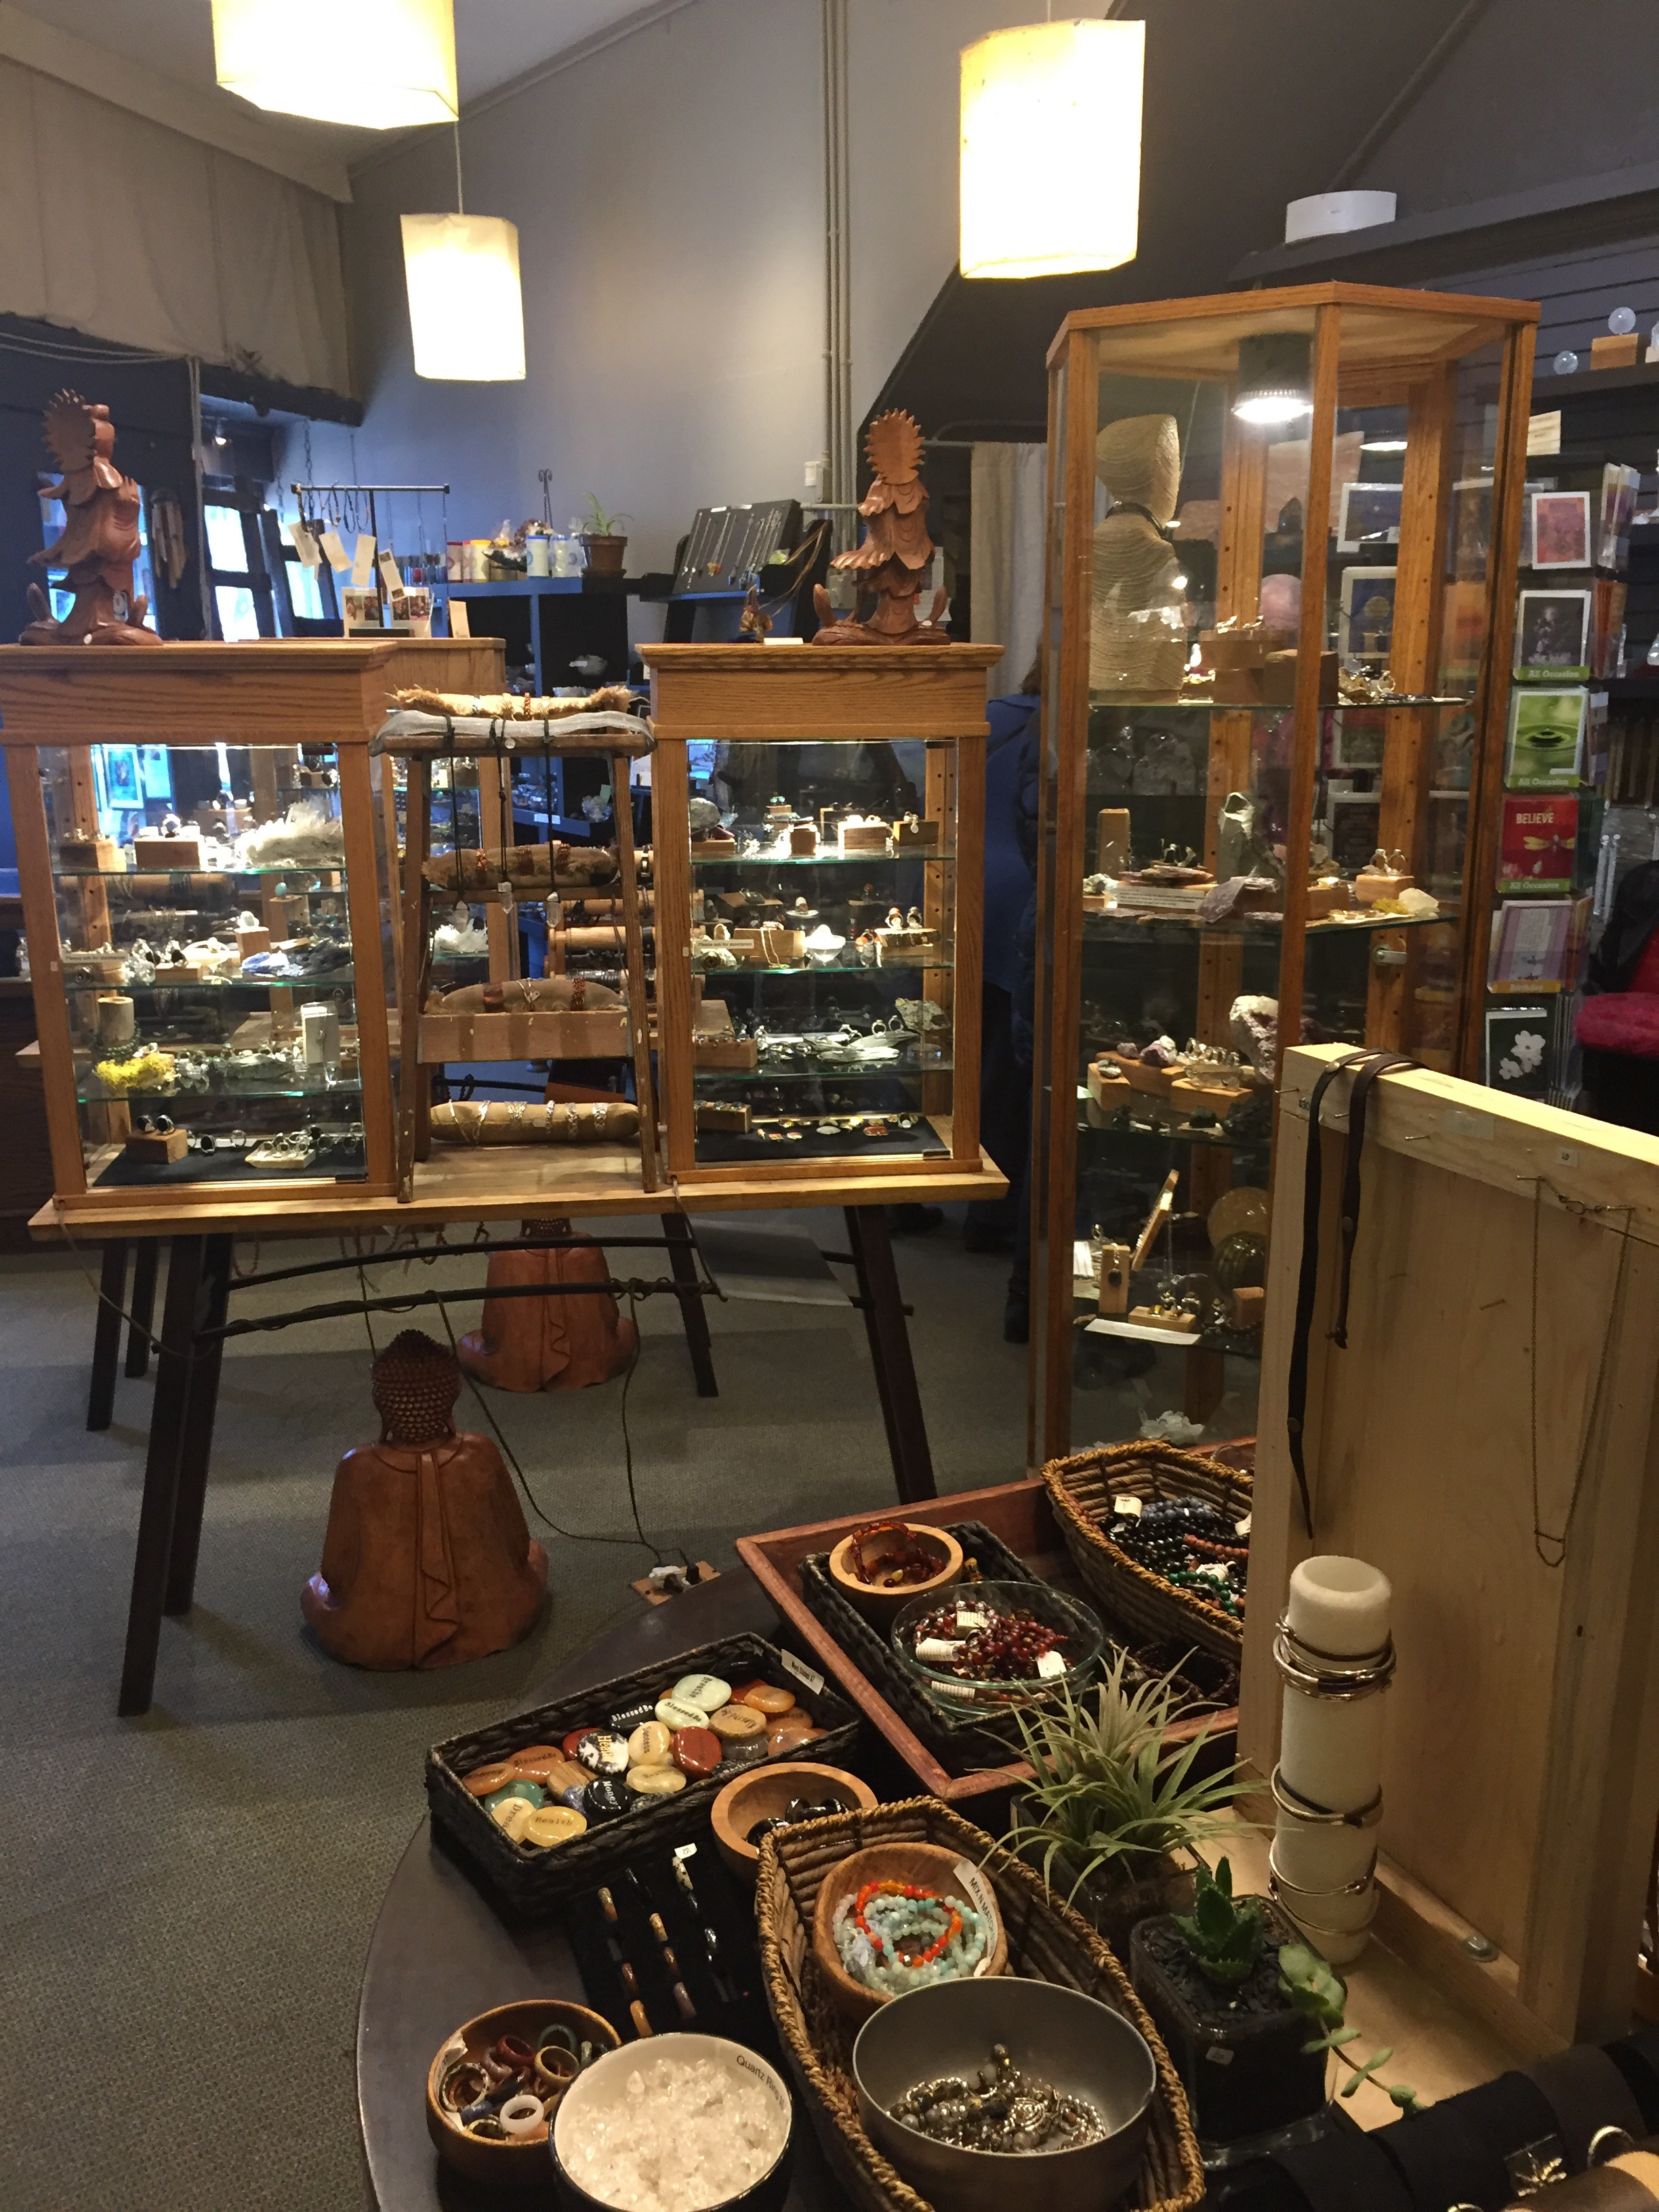 New-Age Shopping: San Francisco's Metaphysical Stores Will